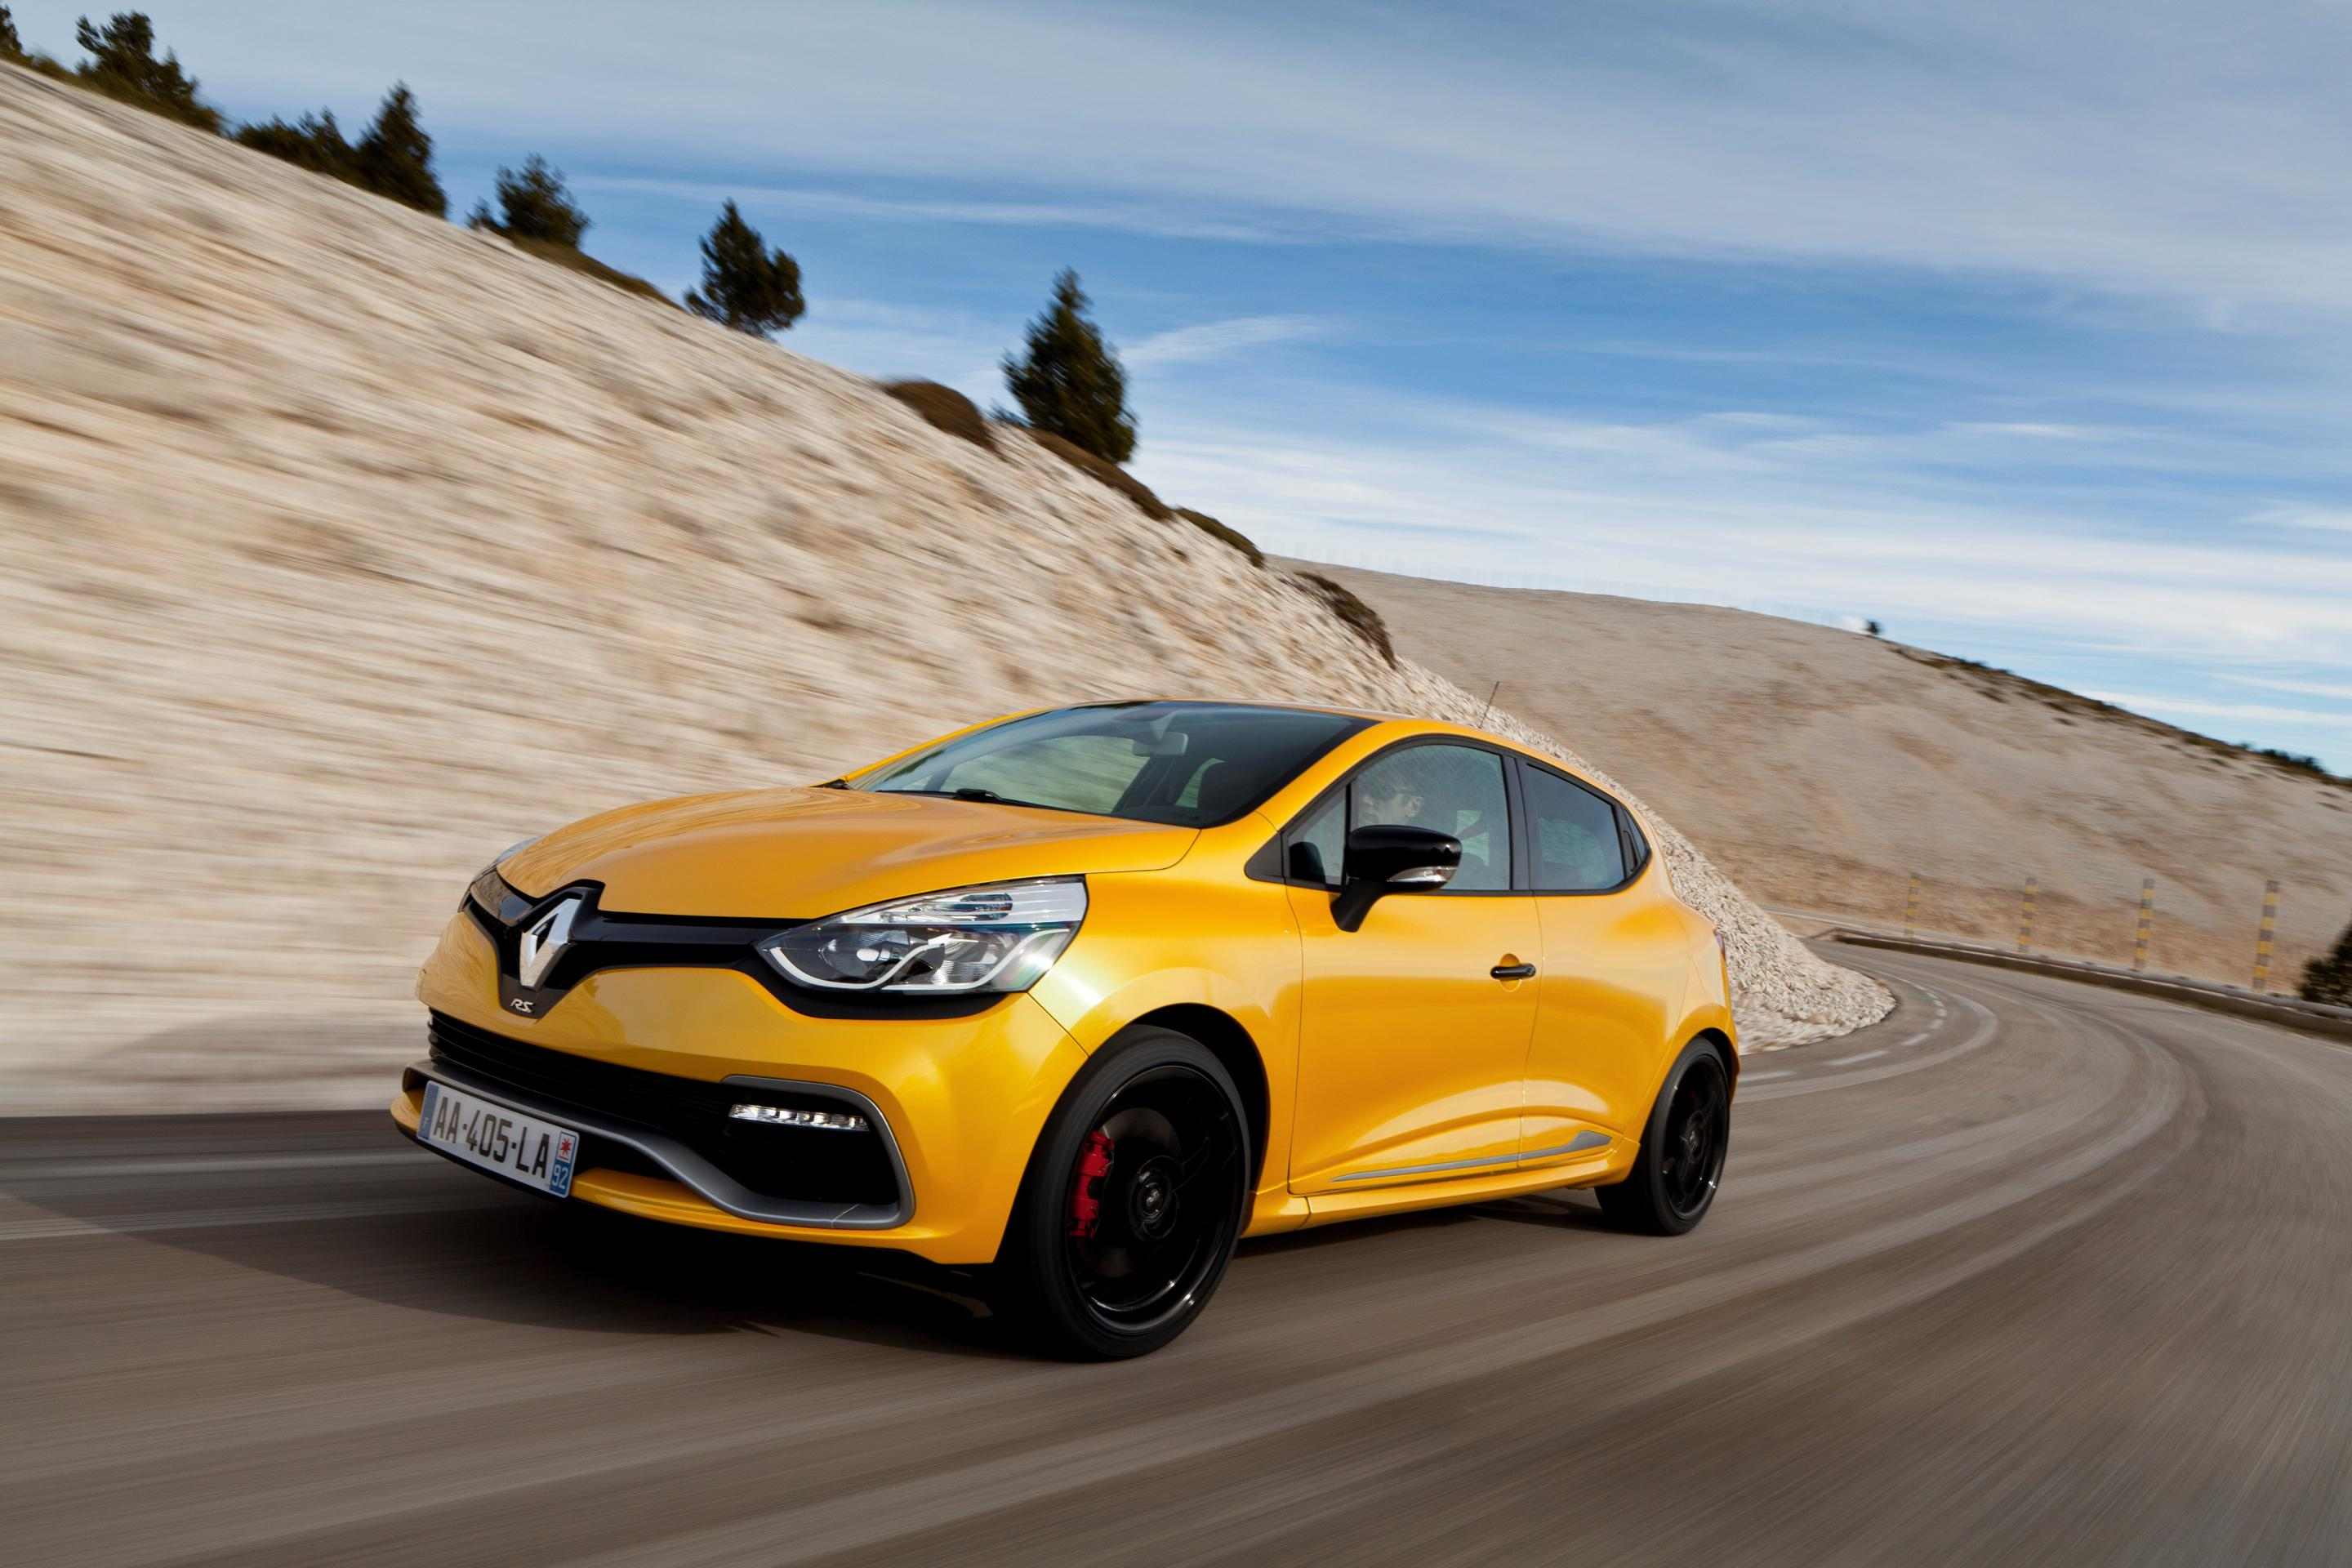 2017 renault clio rs 200 car photos catalog 2019. Black Bedroom Furniture Sets. Home Design Ideas